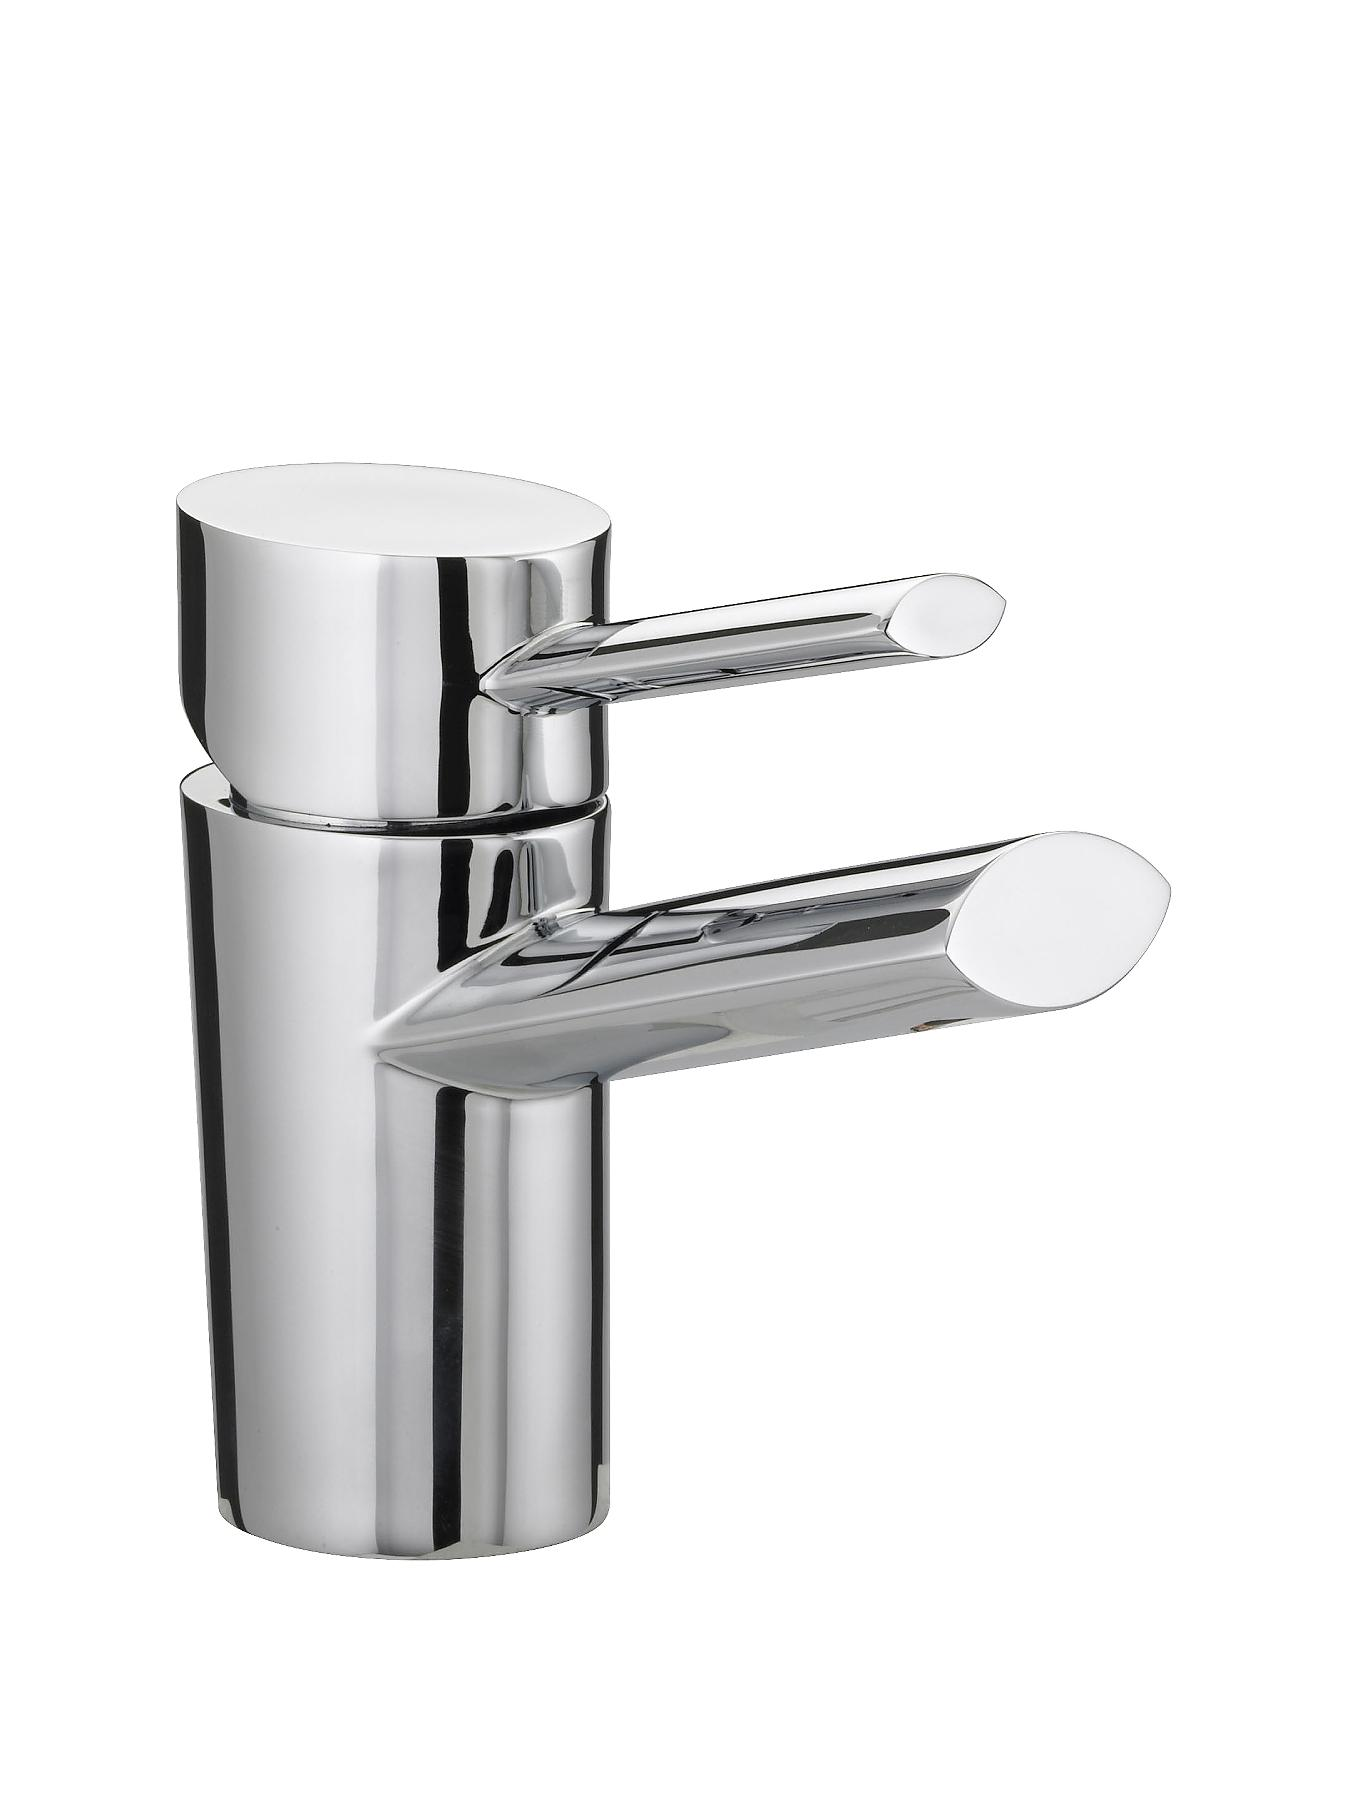 Bristan Oval Eco Basin Mixer Tap - Chrome